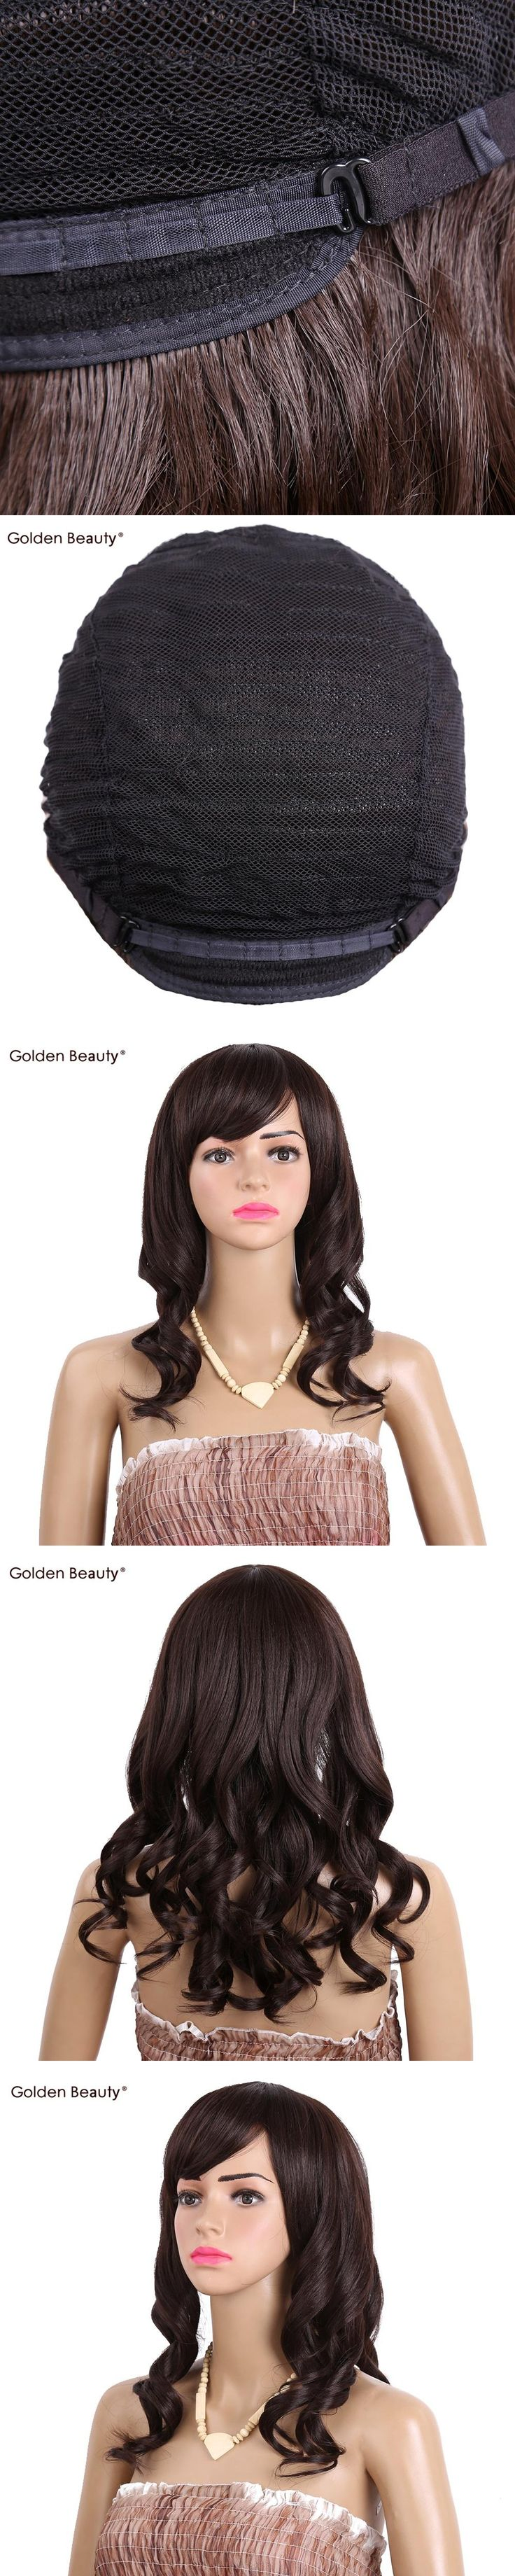 18inch Loose Weave Synthetic Wig for Halloween Party Heat Resistant Long Hair Wigs with Side Part Bangs Golden Beauty